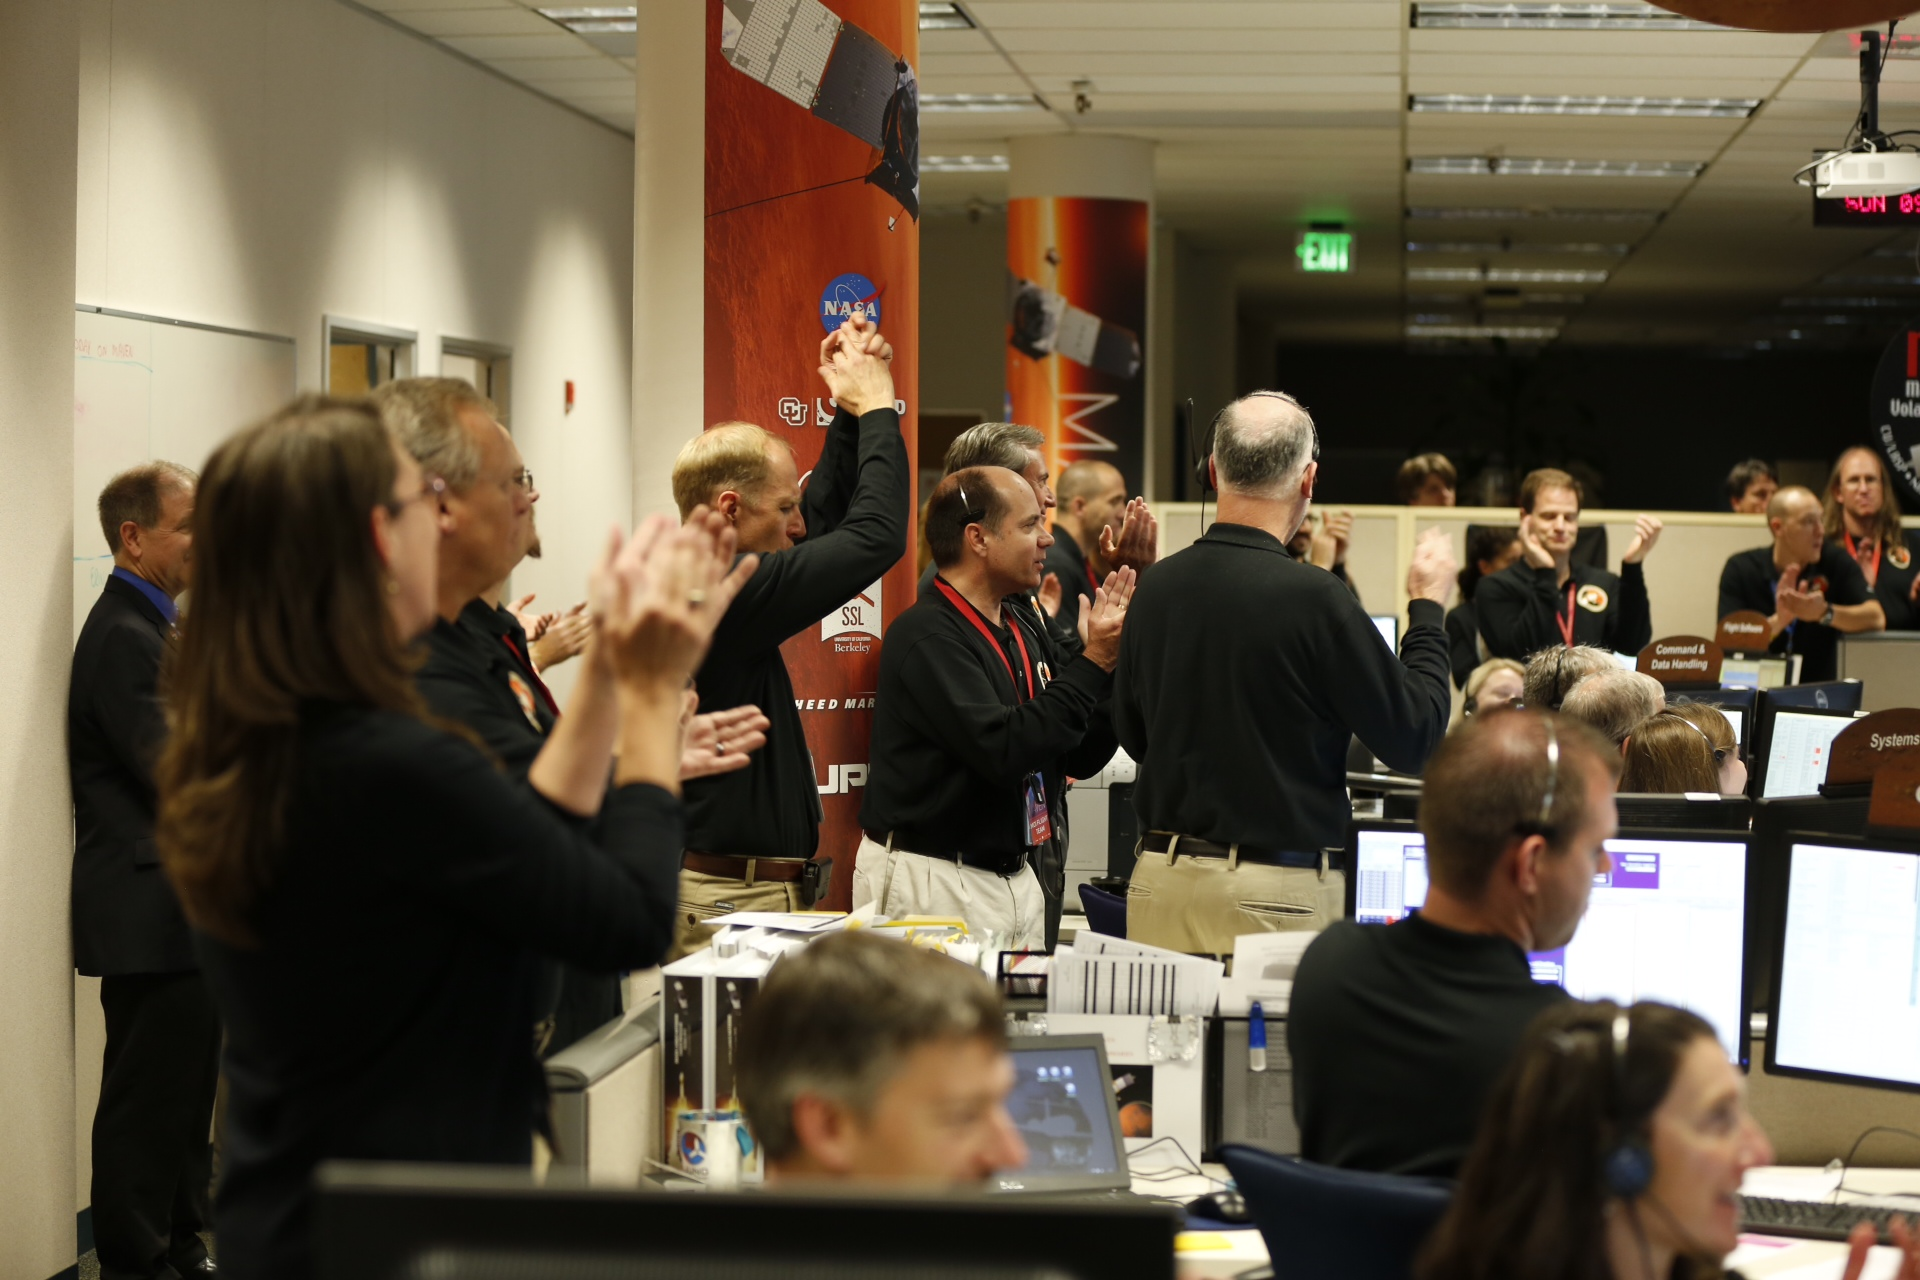 Members of the mission team at the Lockheed Martin Mission Support Area in Littleton, Colorado, celebrate after successfully inserting NASA's Mars Atmosphere and Volatile Evolution (MAVEN) spacecraft into orbit around Mars at 10:24 p.m. EDT Sunday, Sept. 21.